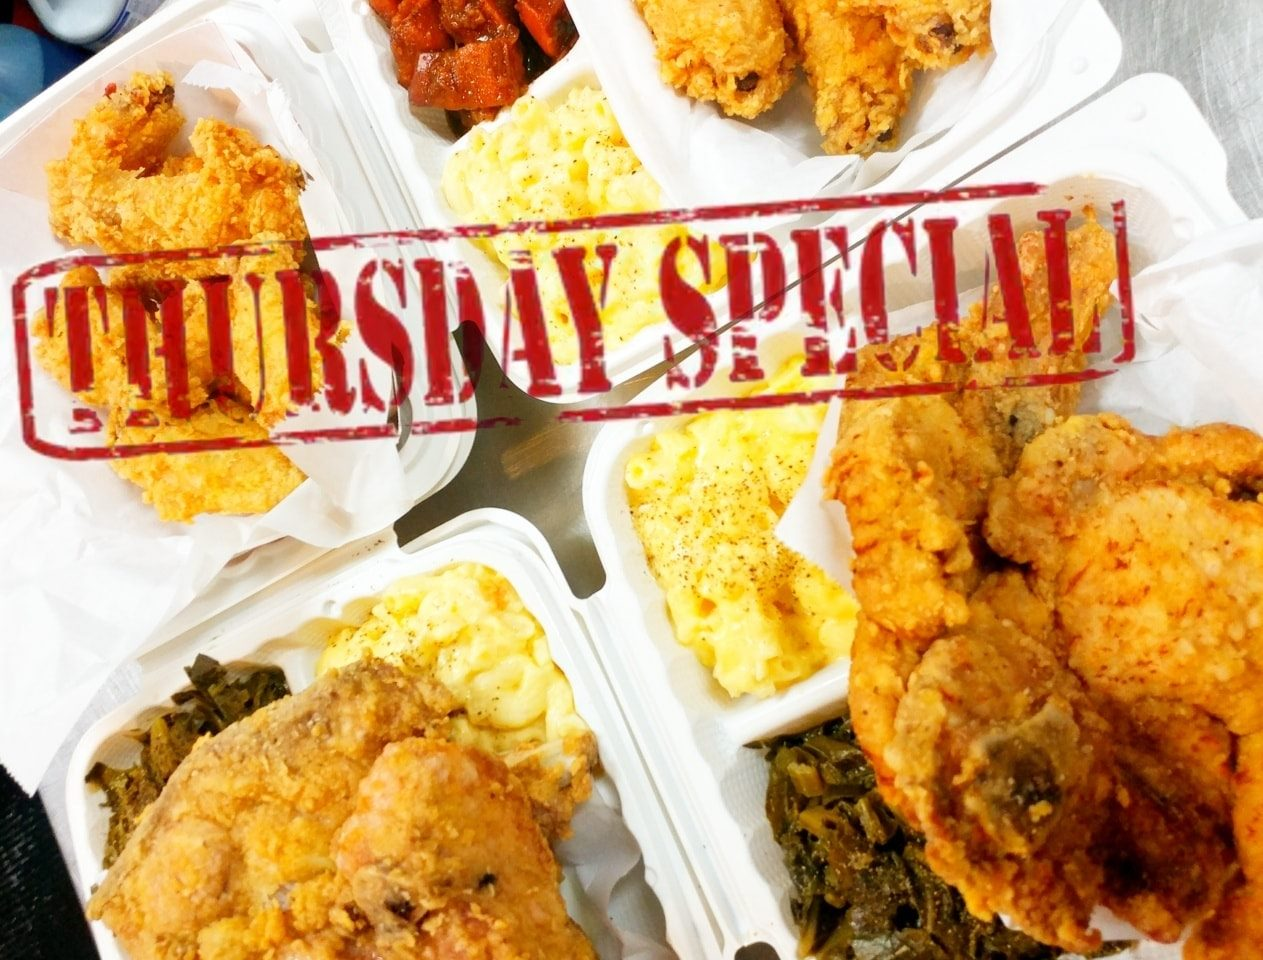 THURSDAY: Fried Pork Chop Plate with 2 Sides